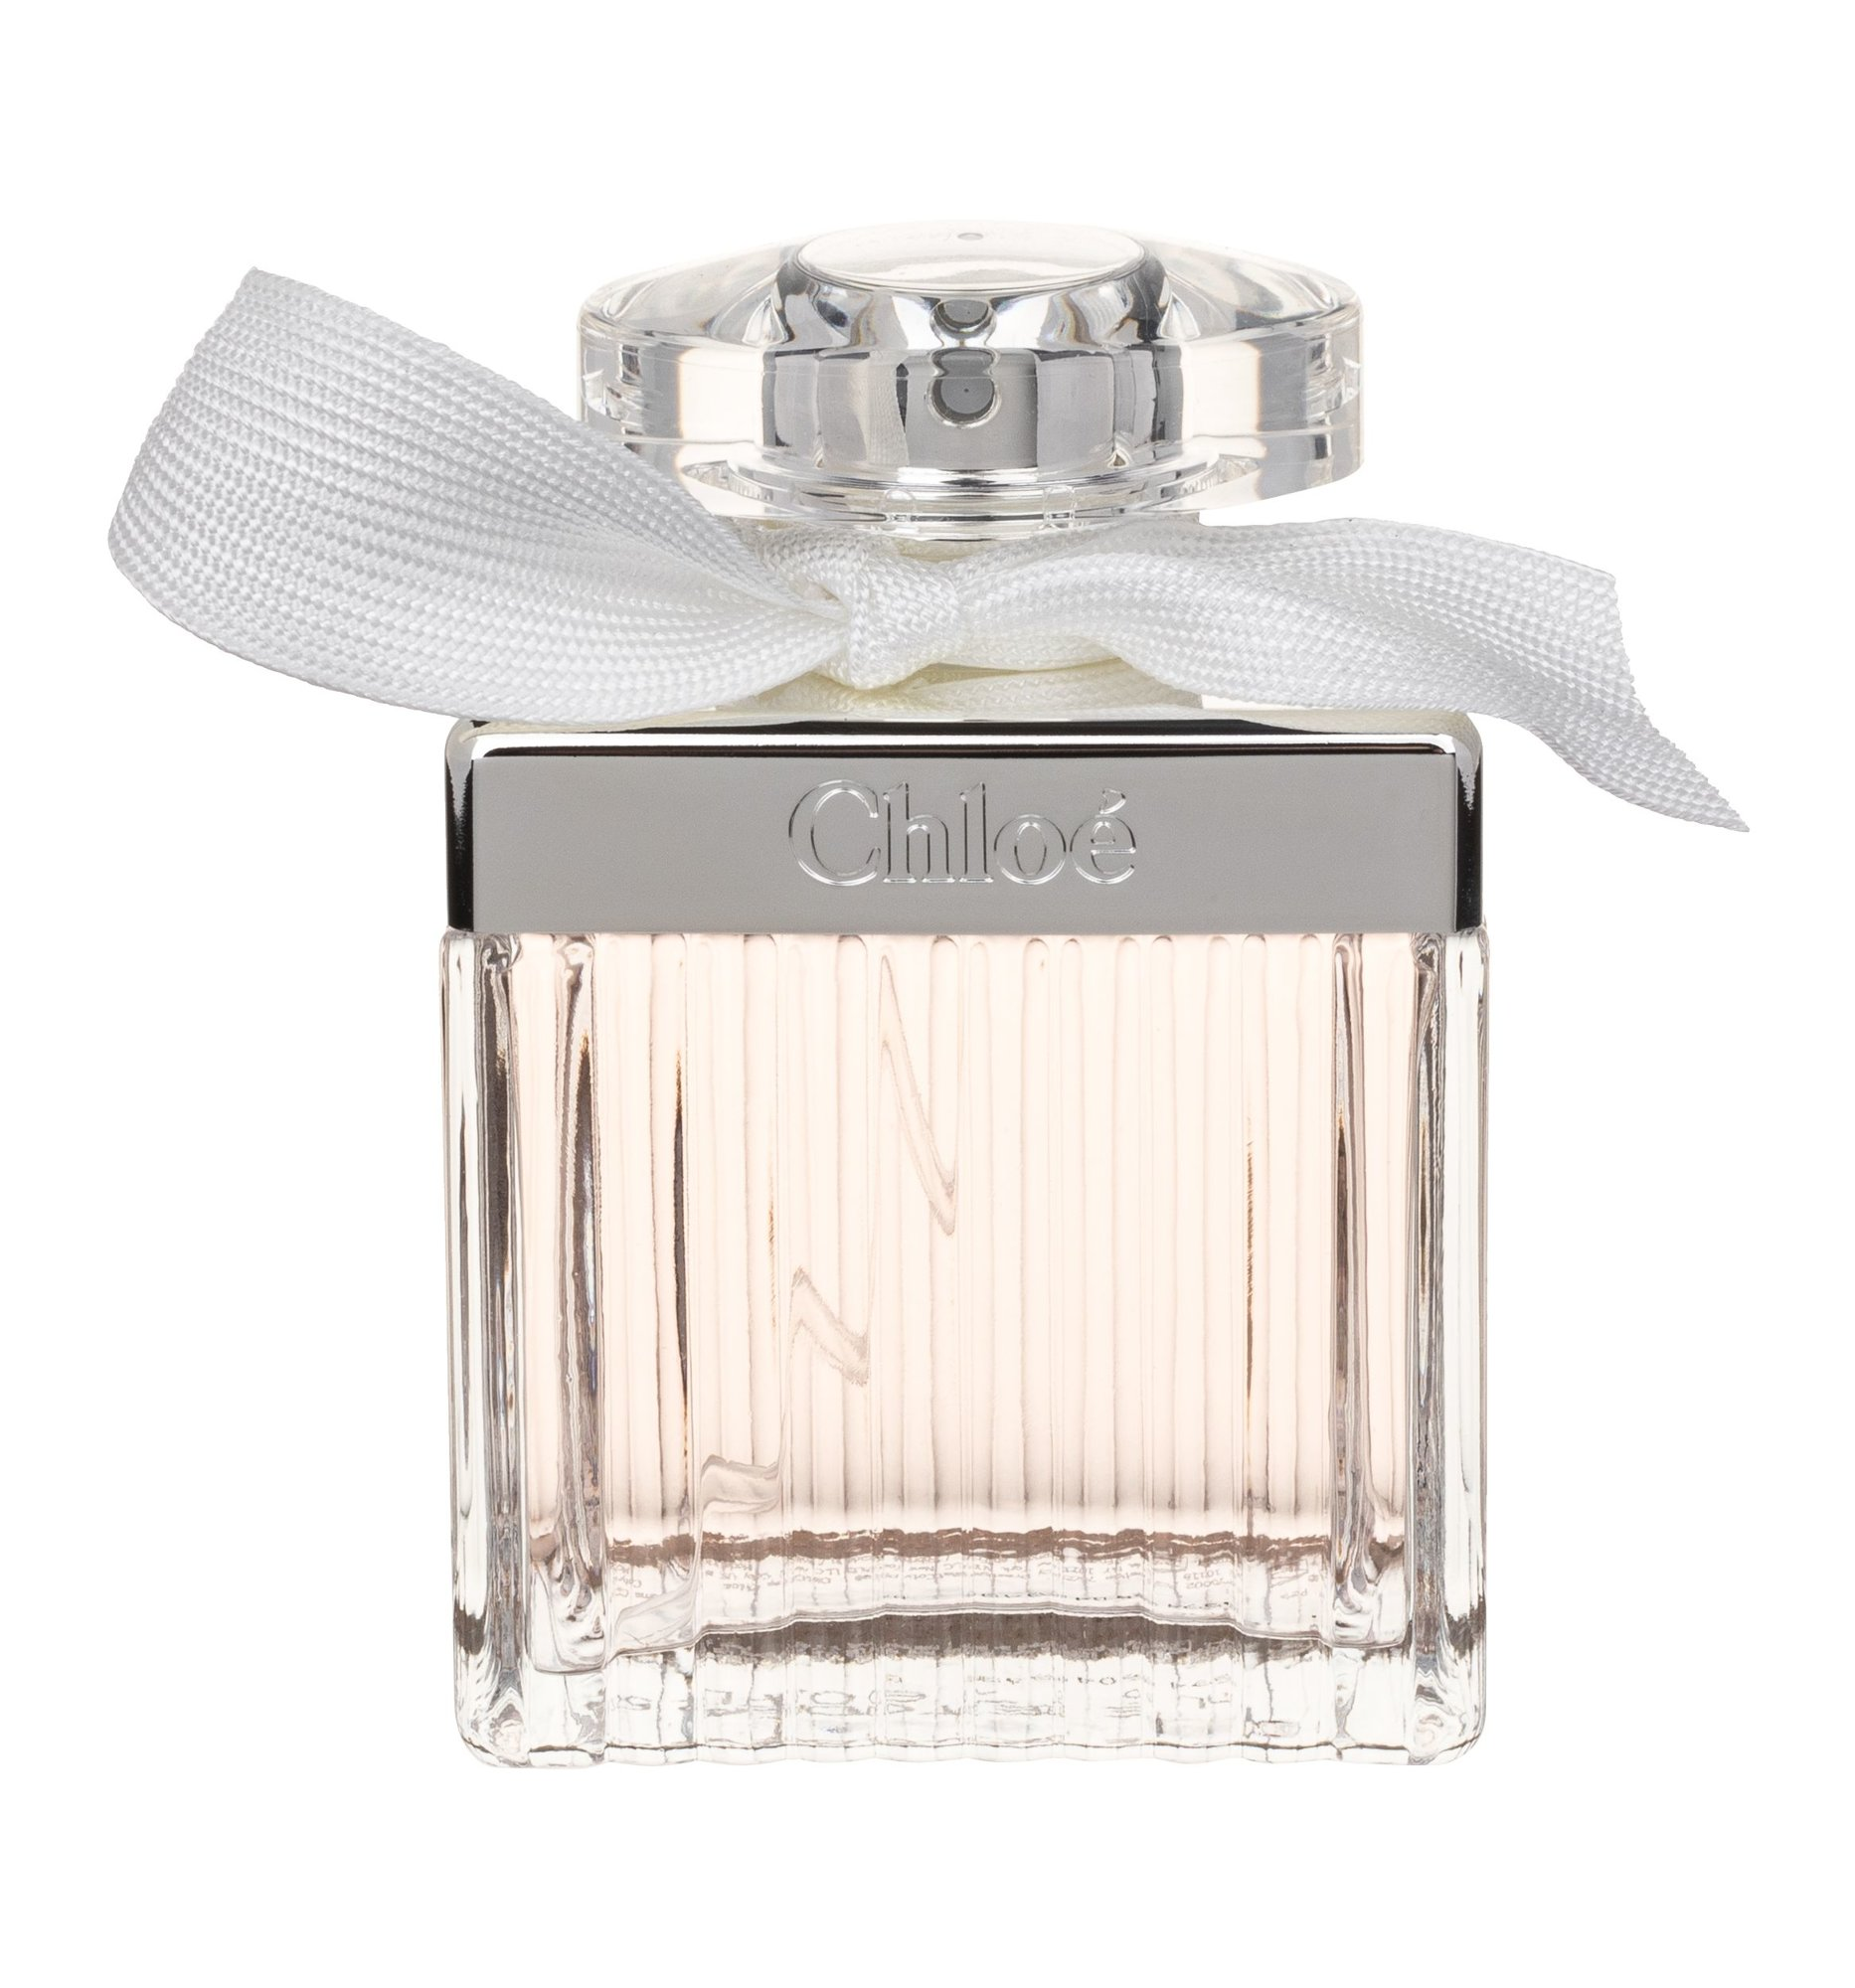 Chloe Chloe EDT 75ml